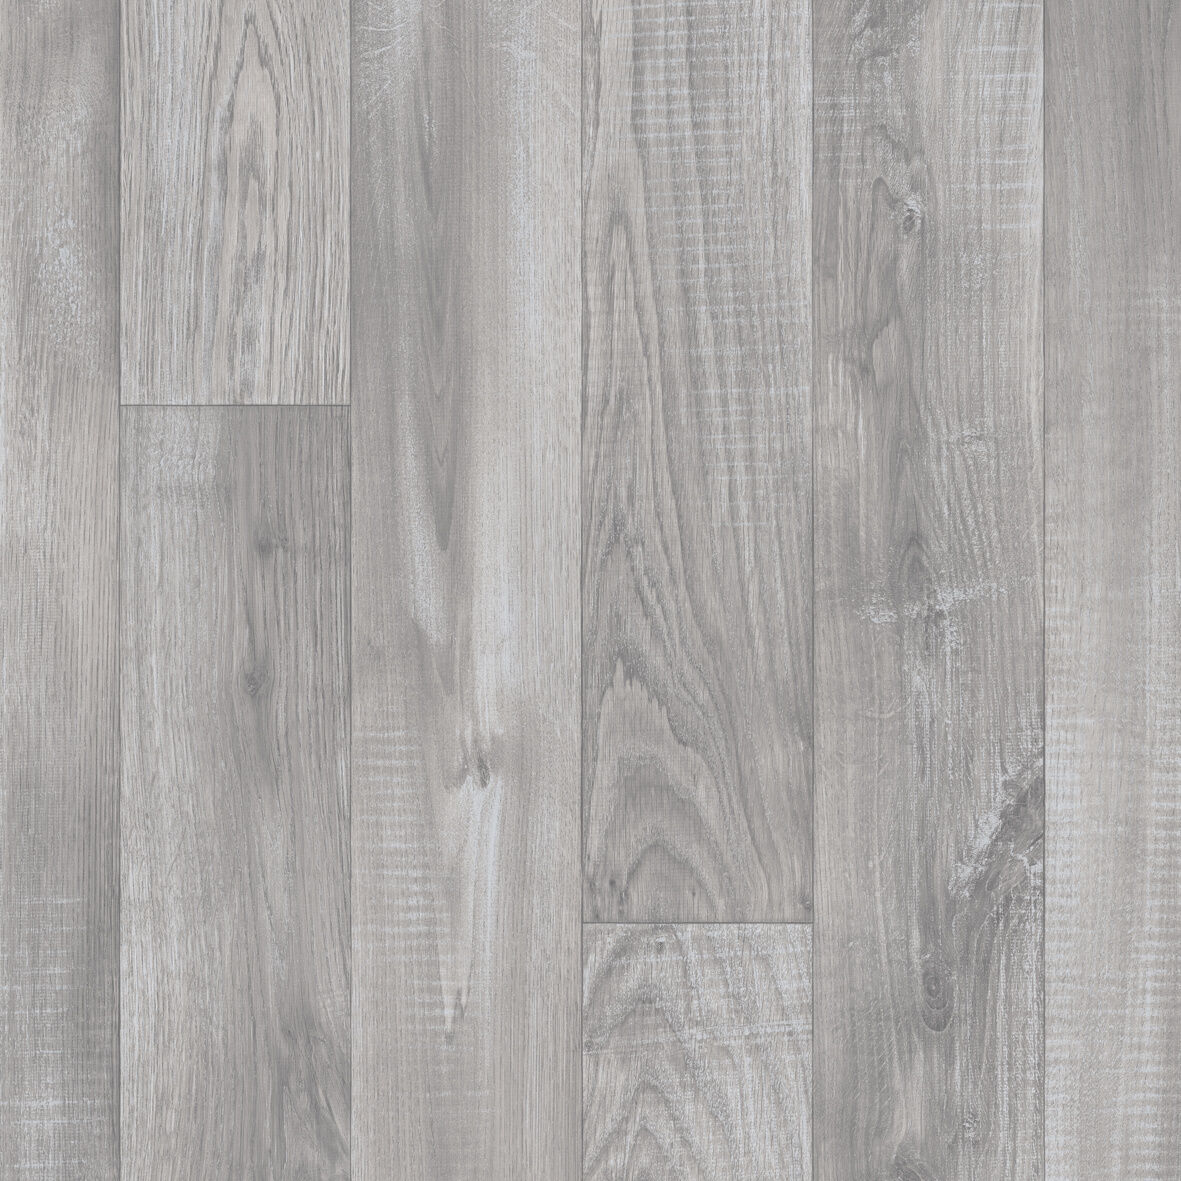 Details About Modern 2 8mm Thick Light Grey Wood Vinyl Flooring 2m Wide 8 99sqm